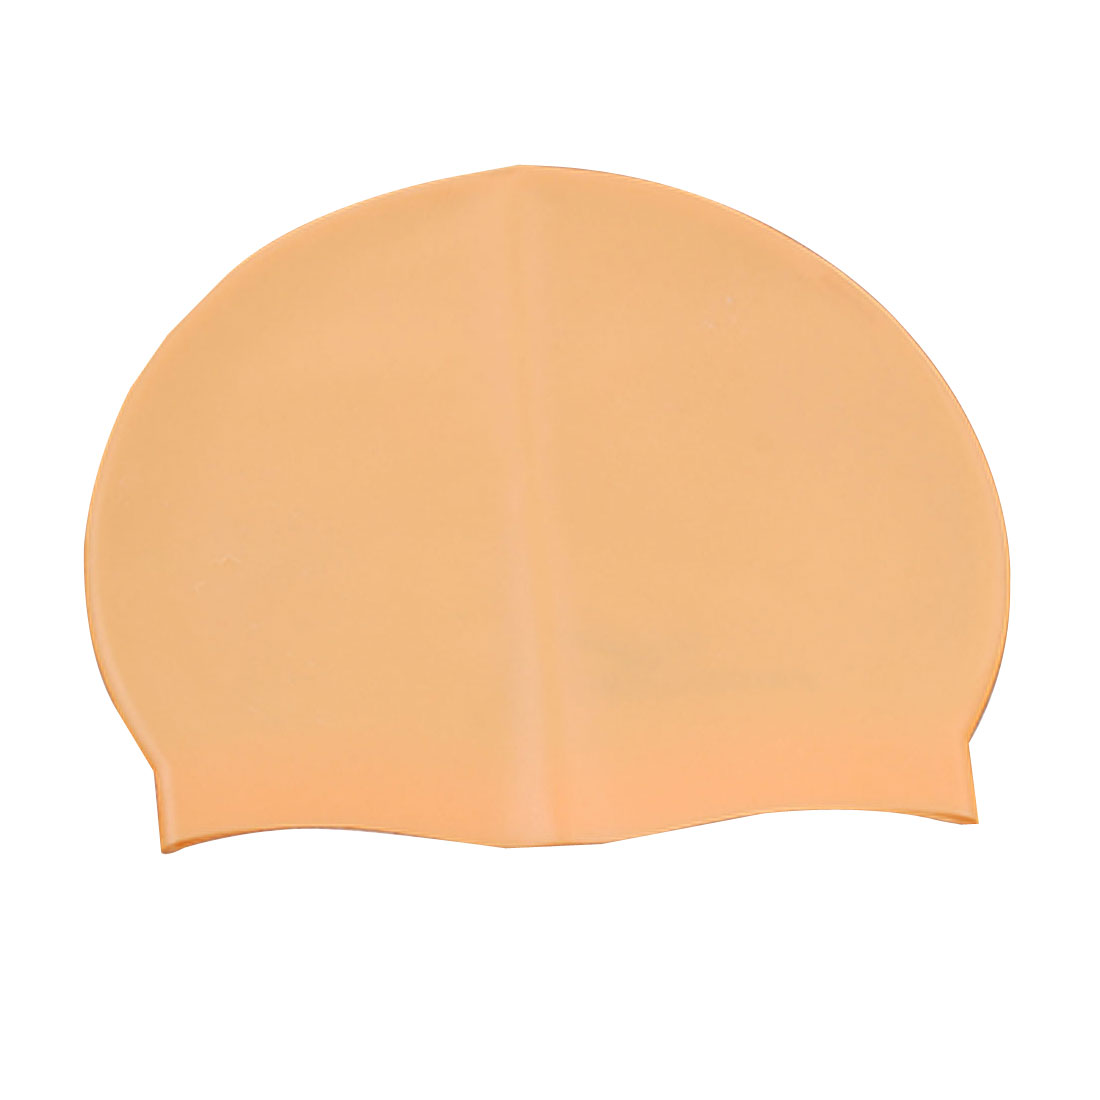 "Adults Silicone Sporting Training Skin Skid Proof Swim Cap Orange 7"" x 7.65"""